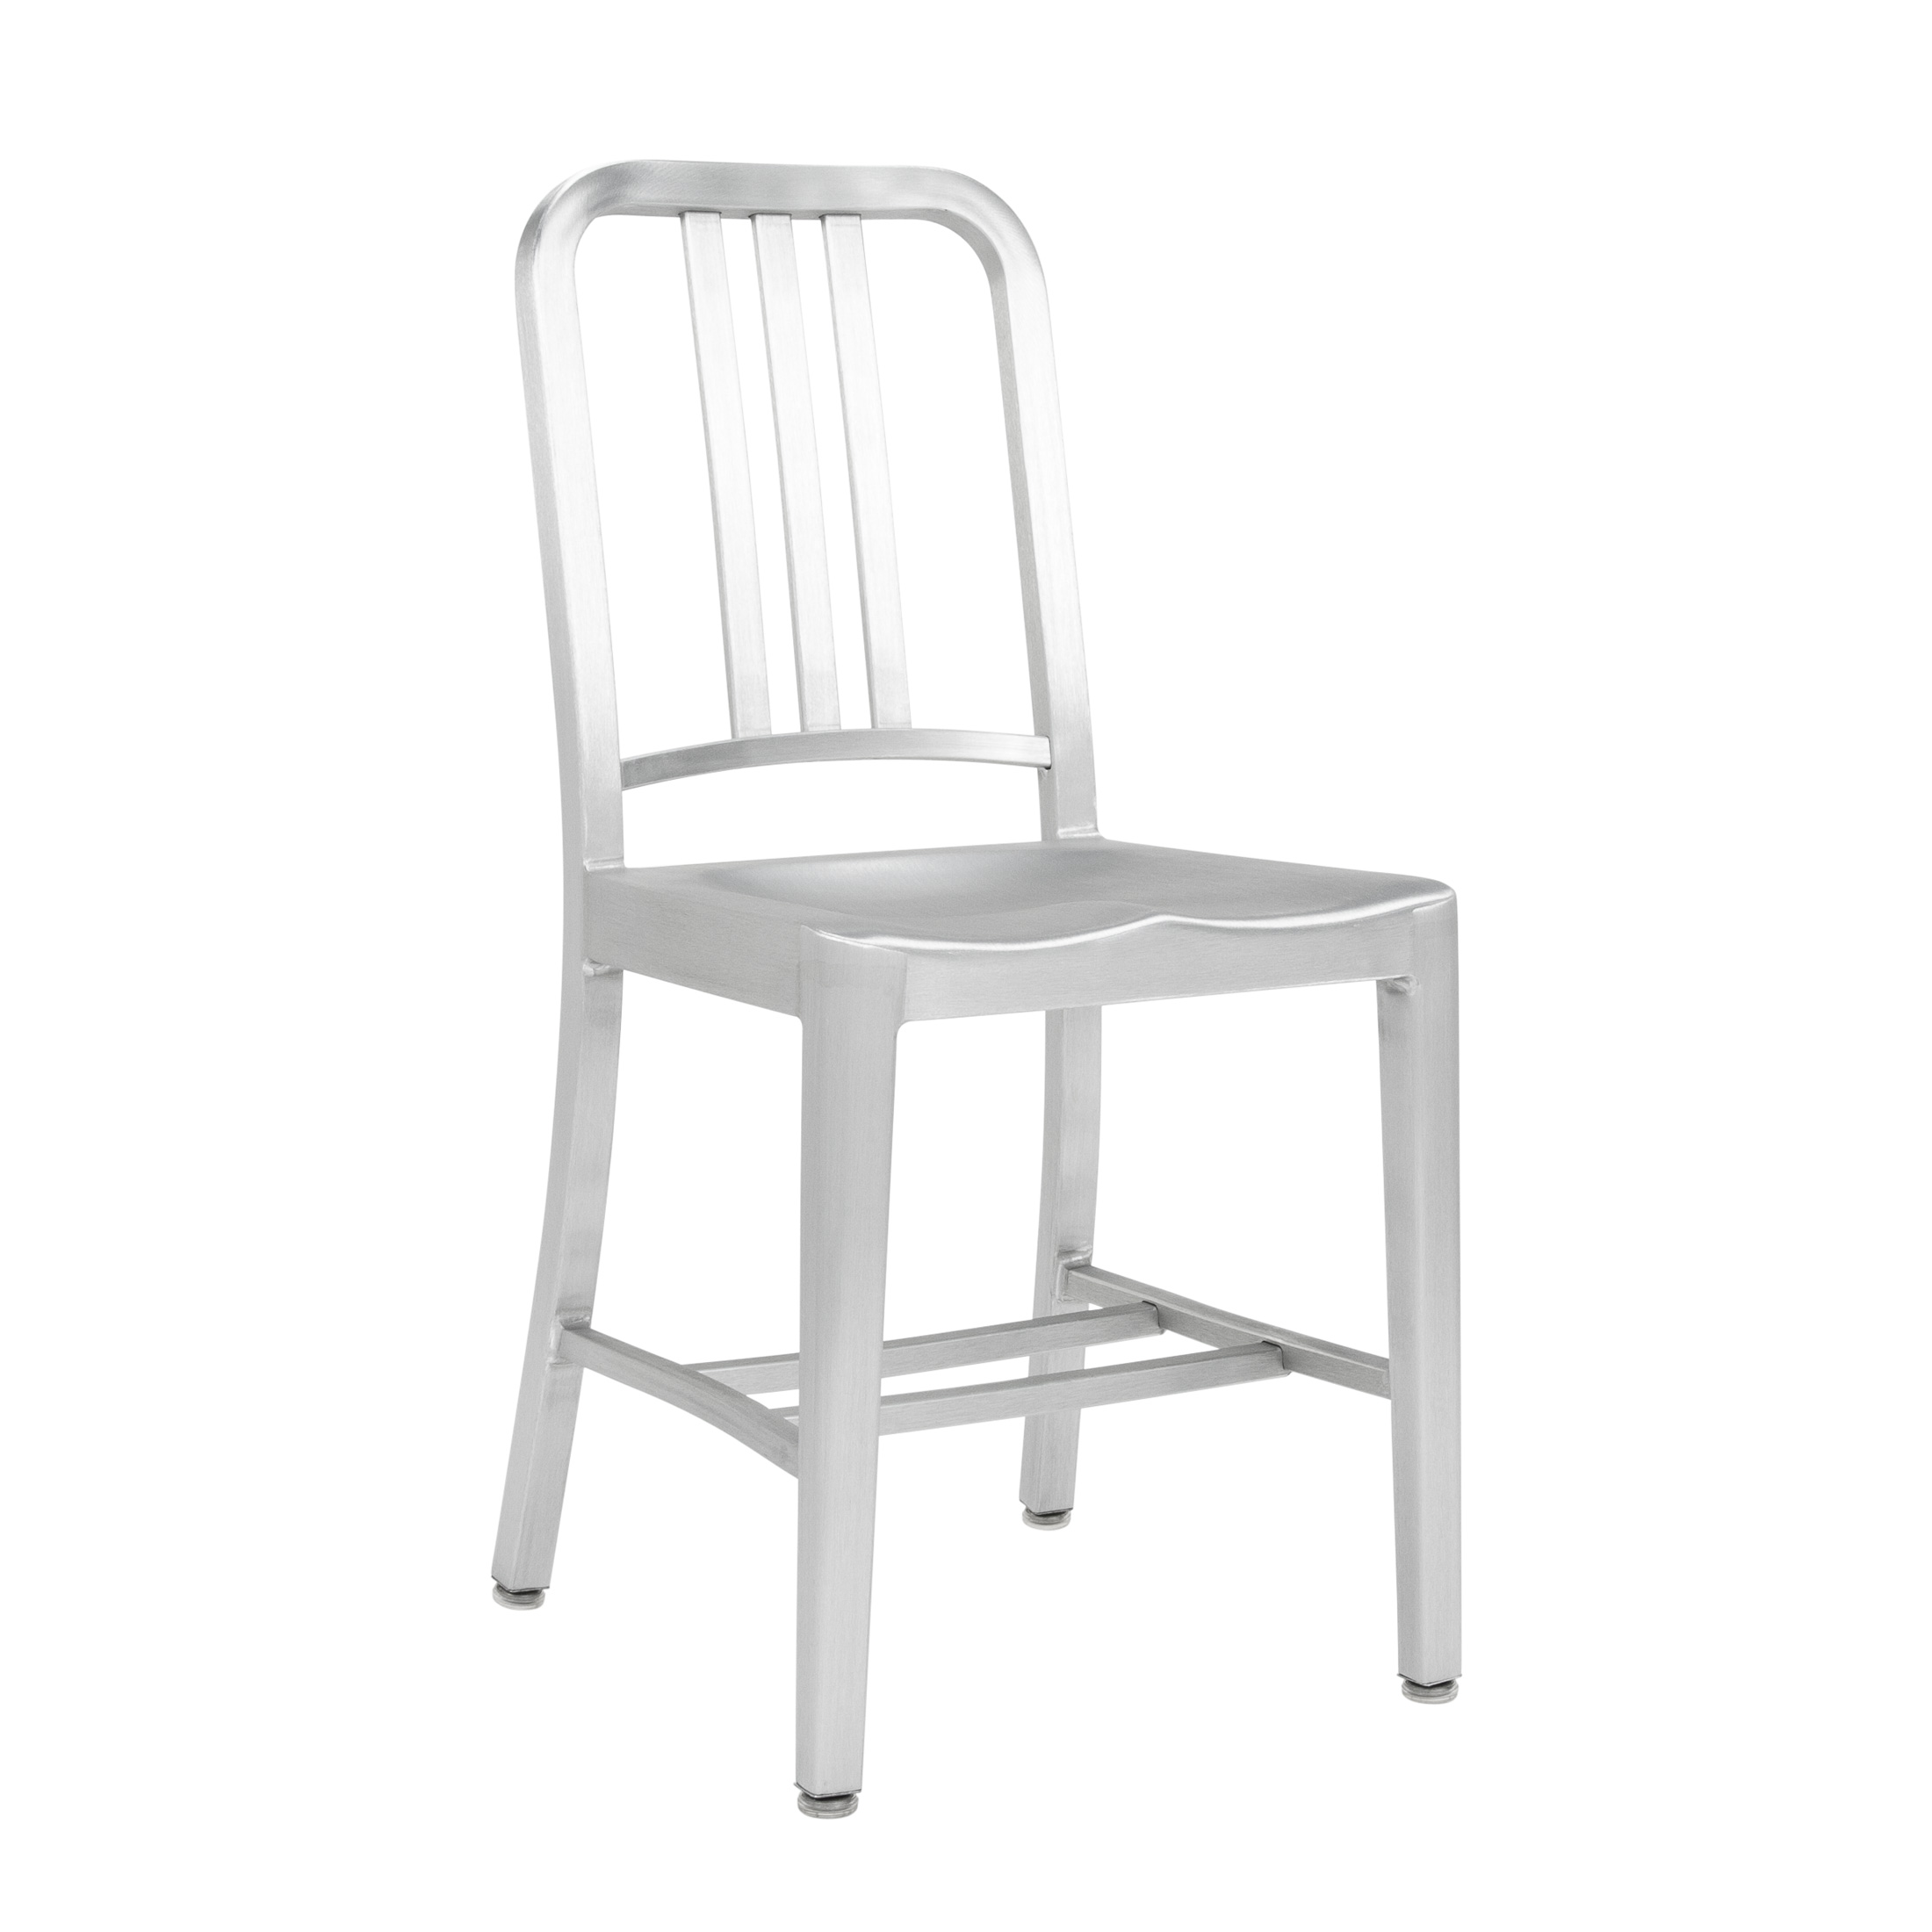 Emeco Navy Chair 1006